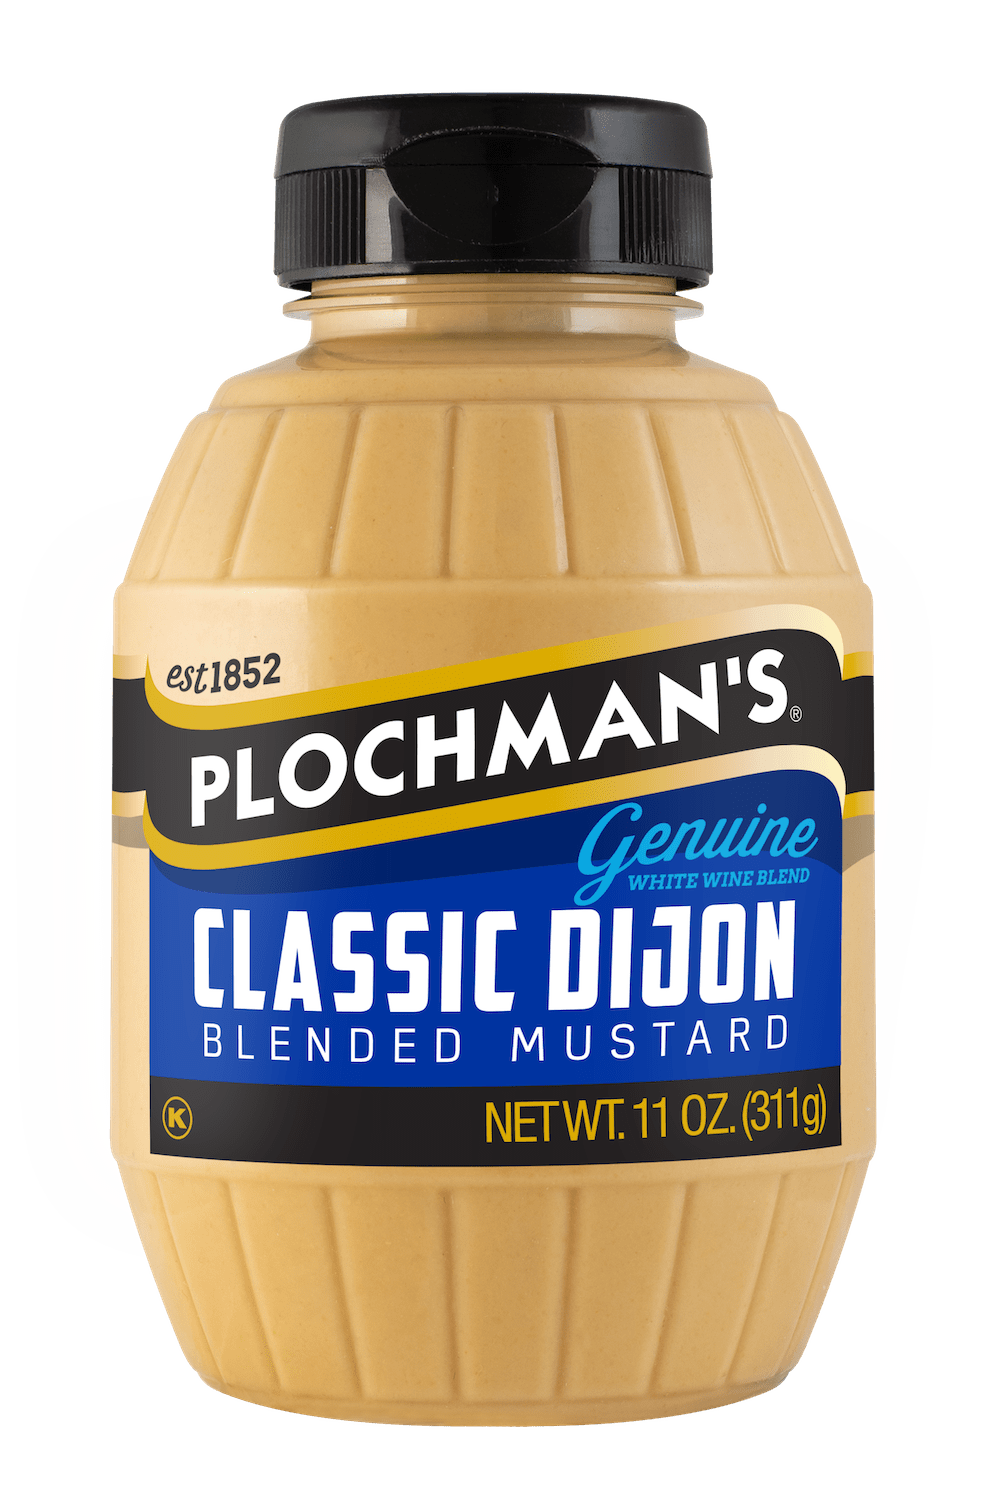 Classic Dijion mustard in 11oz barrel bottle